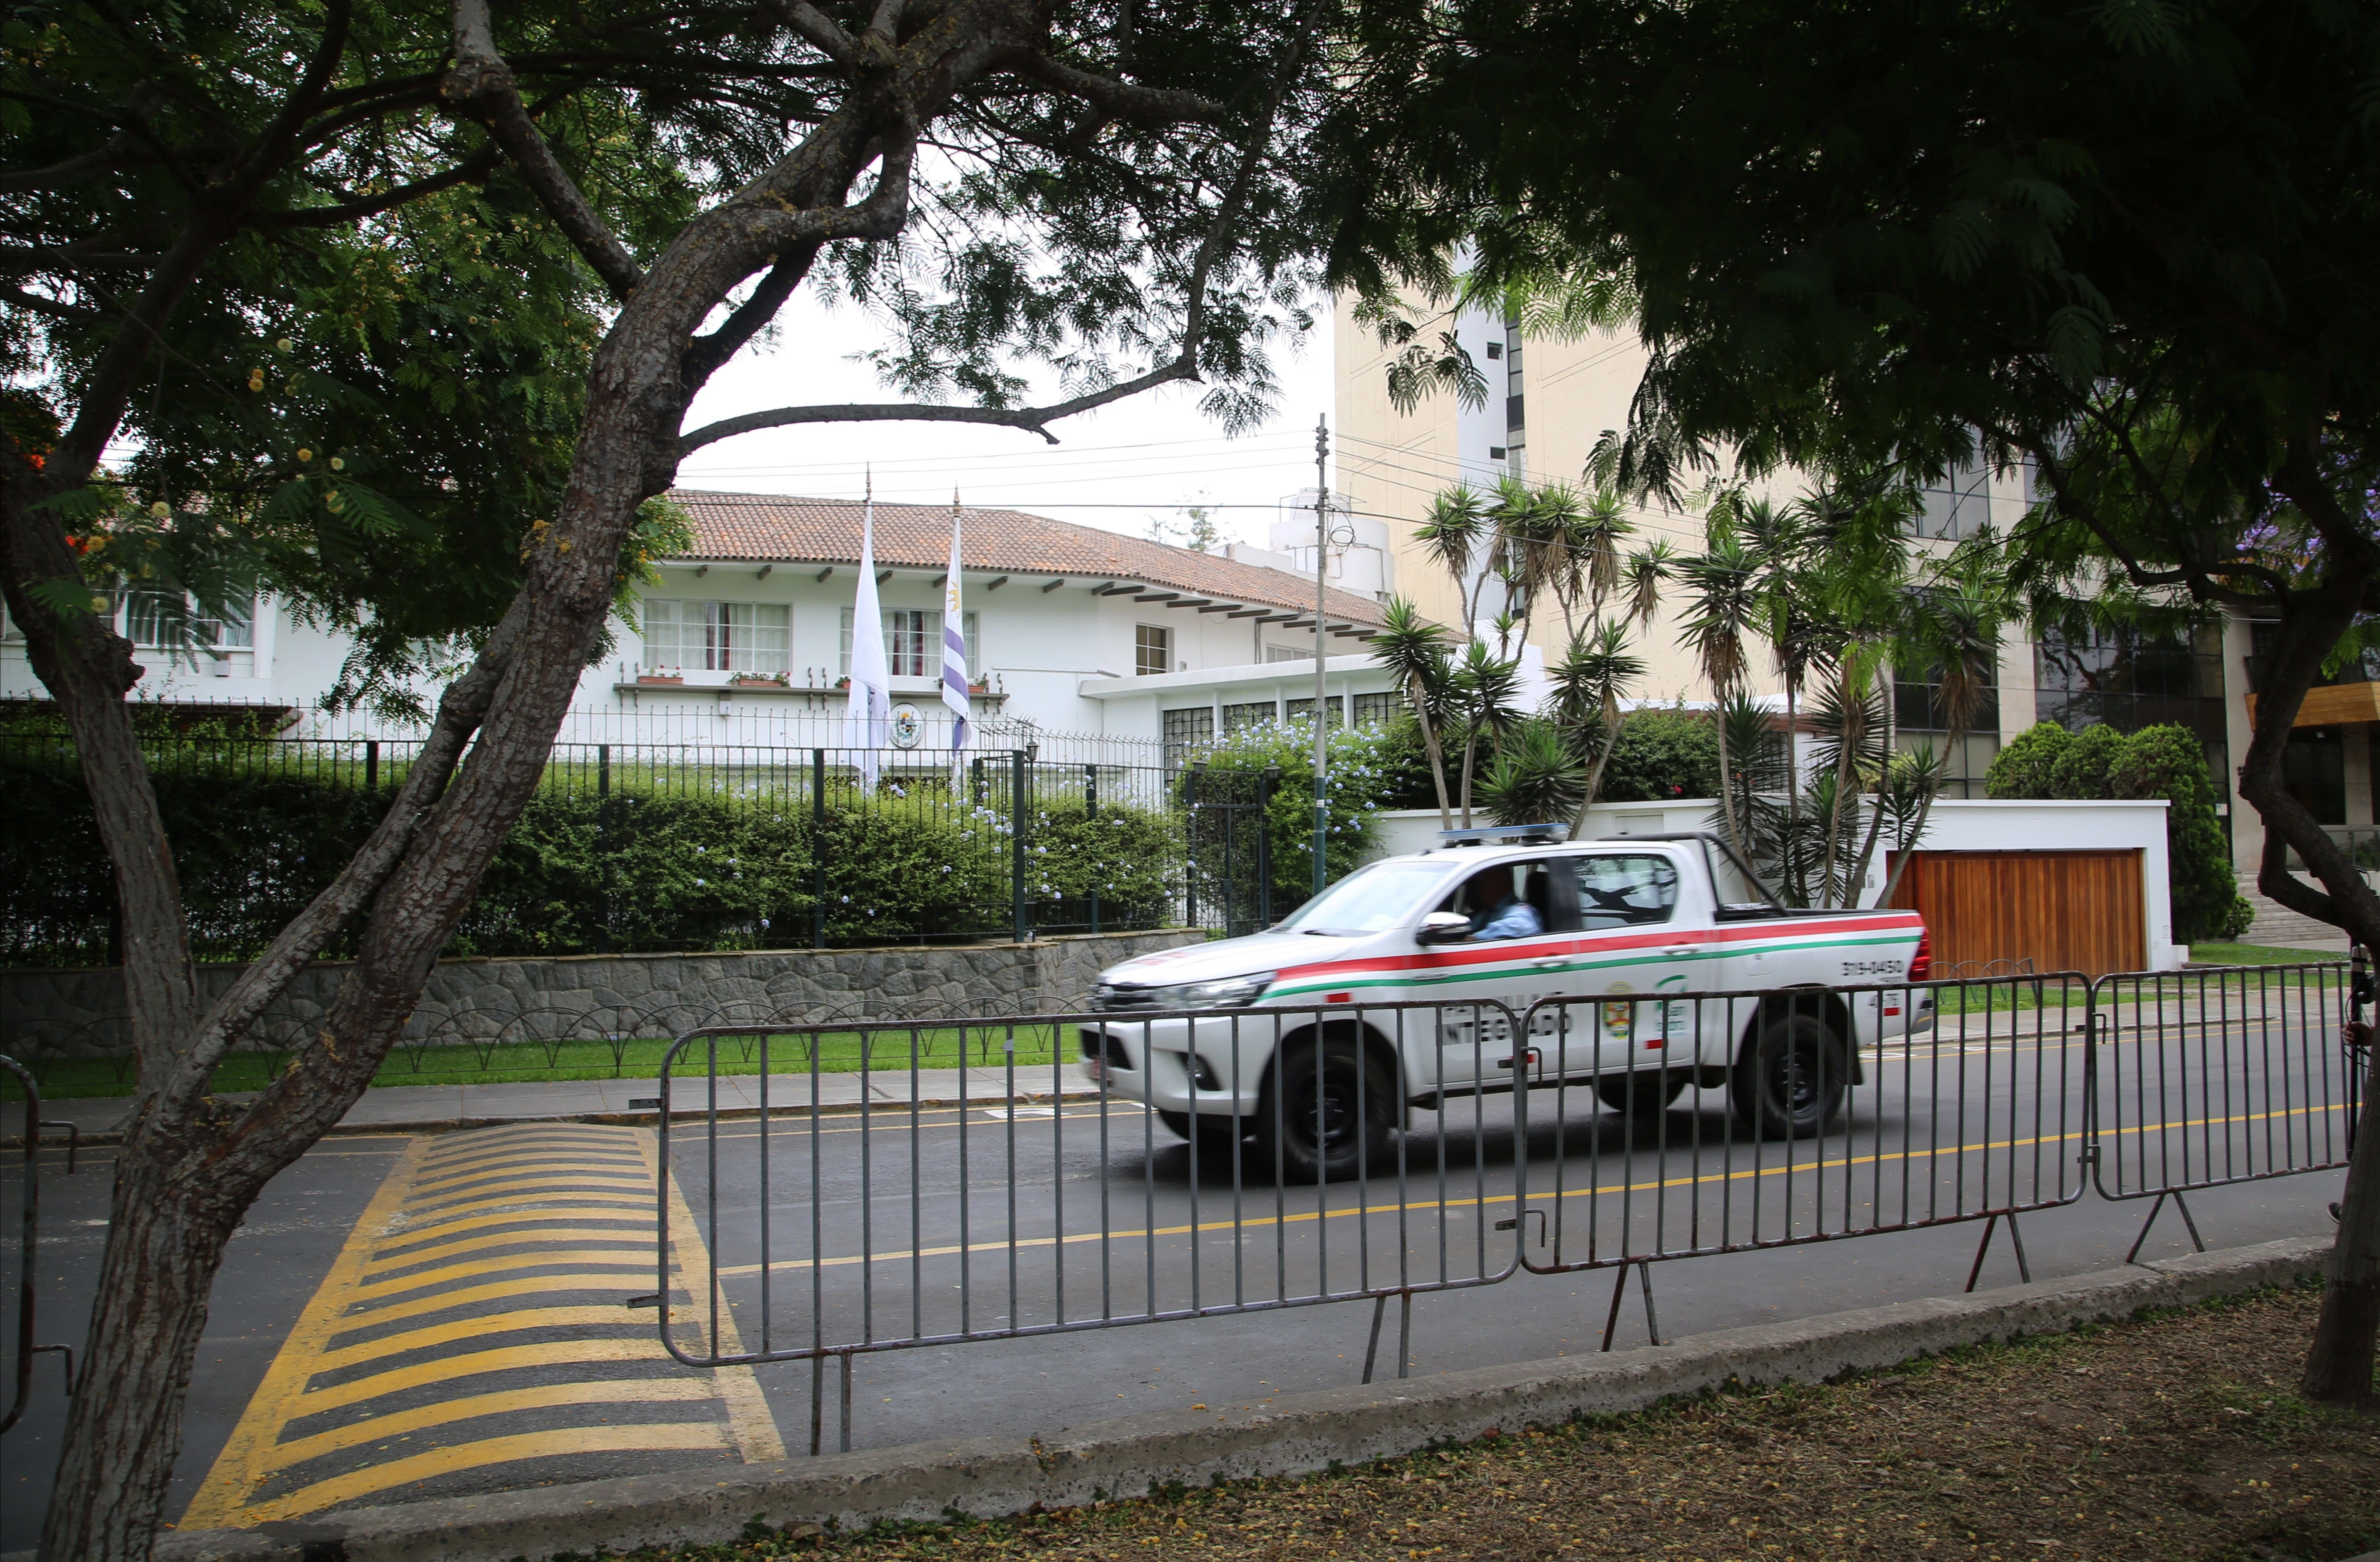 Barriers stand outside the residence of Uruguay's ambassador to Peru where Peru's former President Alan Garcia took refuge and asked for asylum, in Lima, Peru, Monday, Dec. 3, 2018. Garcia said Monday he would cooperate with prosecutors investigating him for corruption after Uruguay turned down his asylum request and forced him to leave the residence. (AP Photo/Mauricio Munoz)